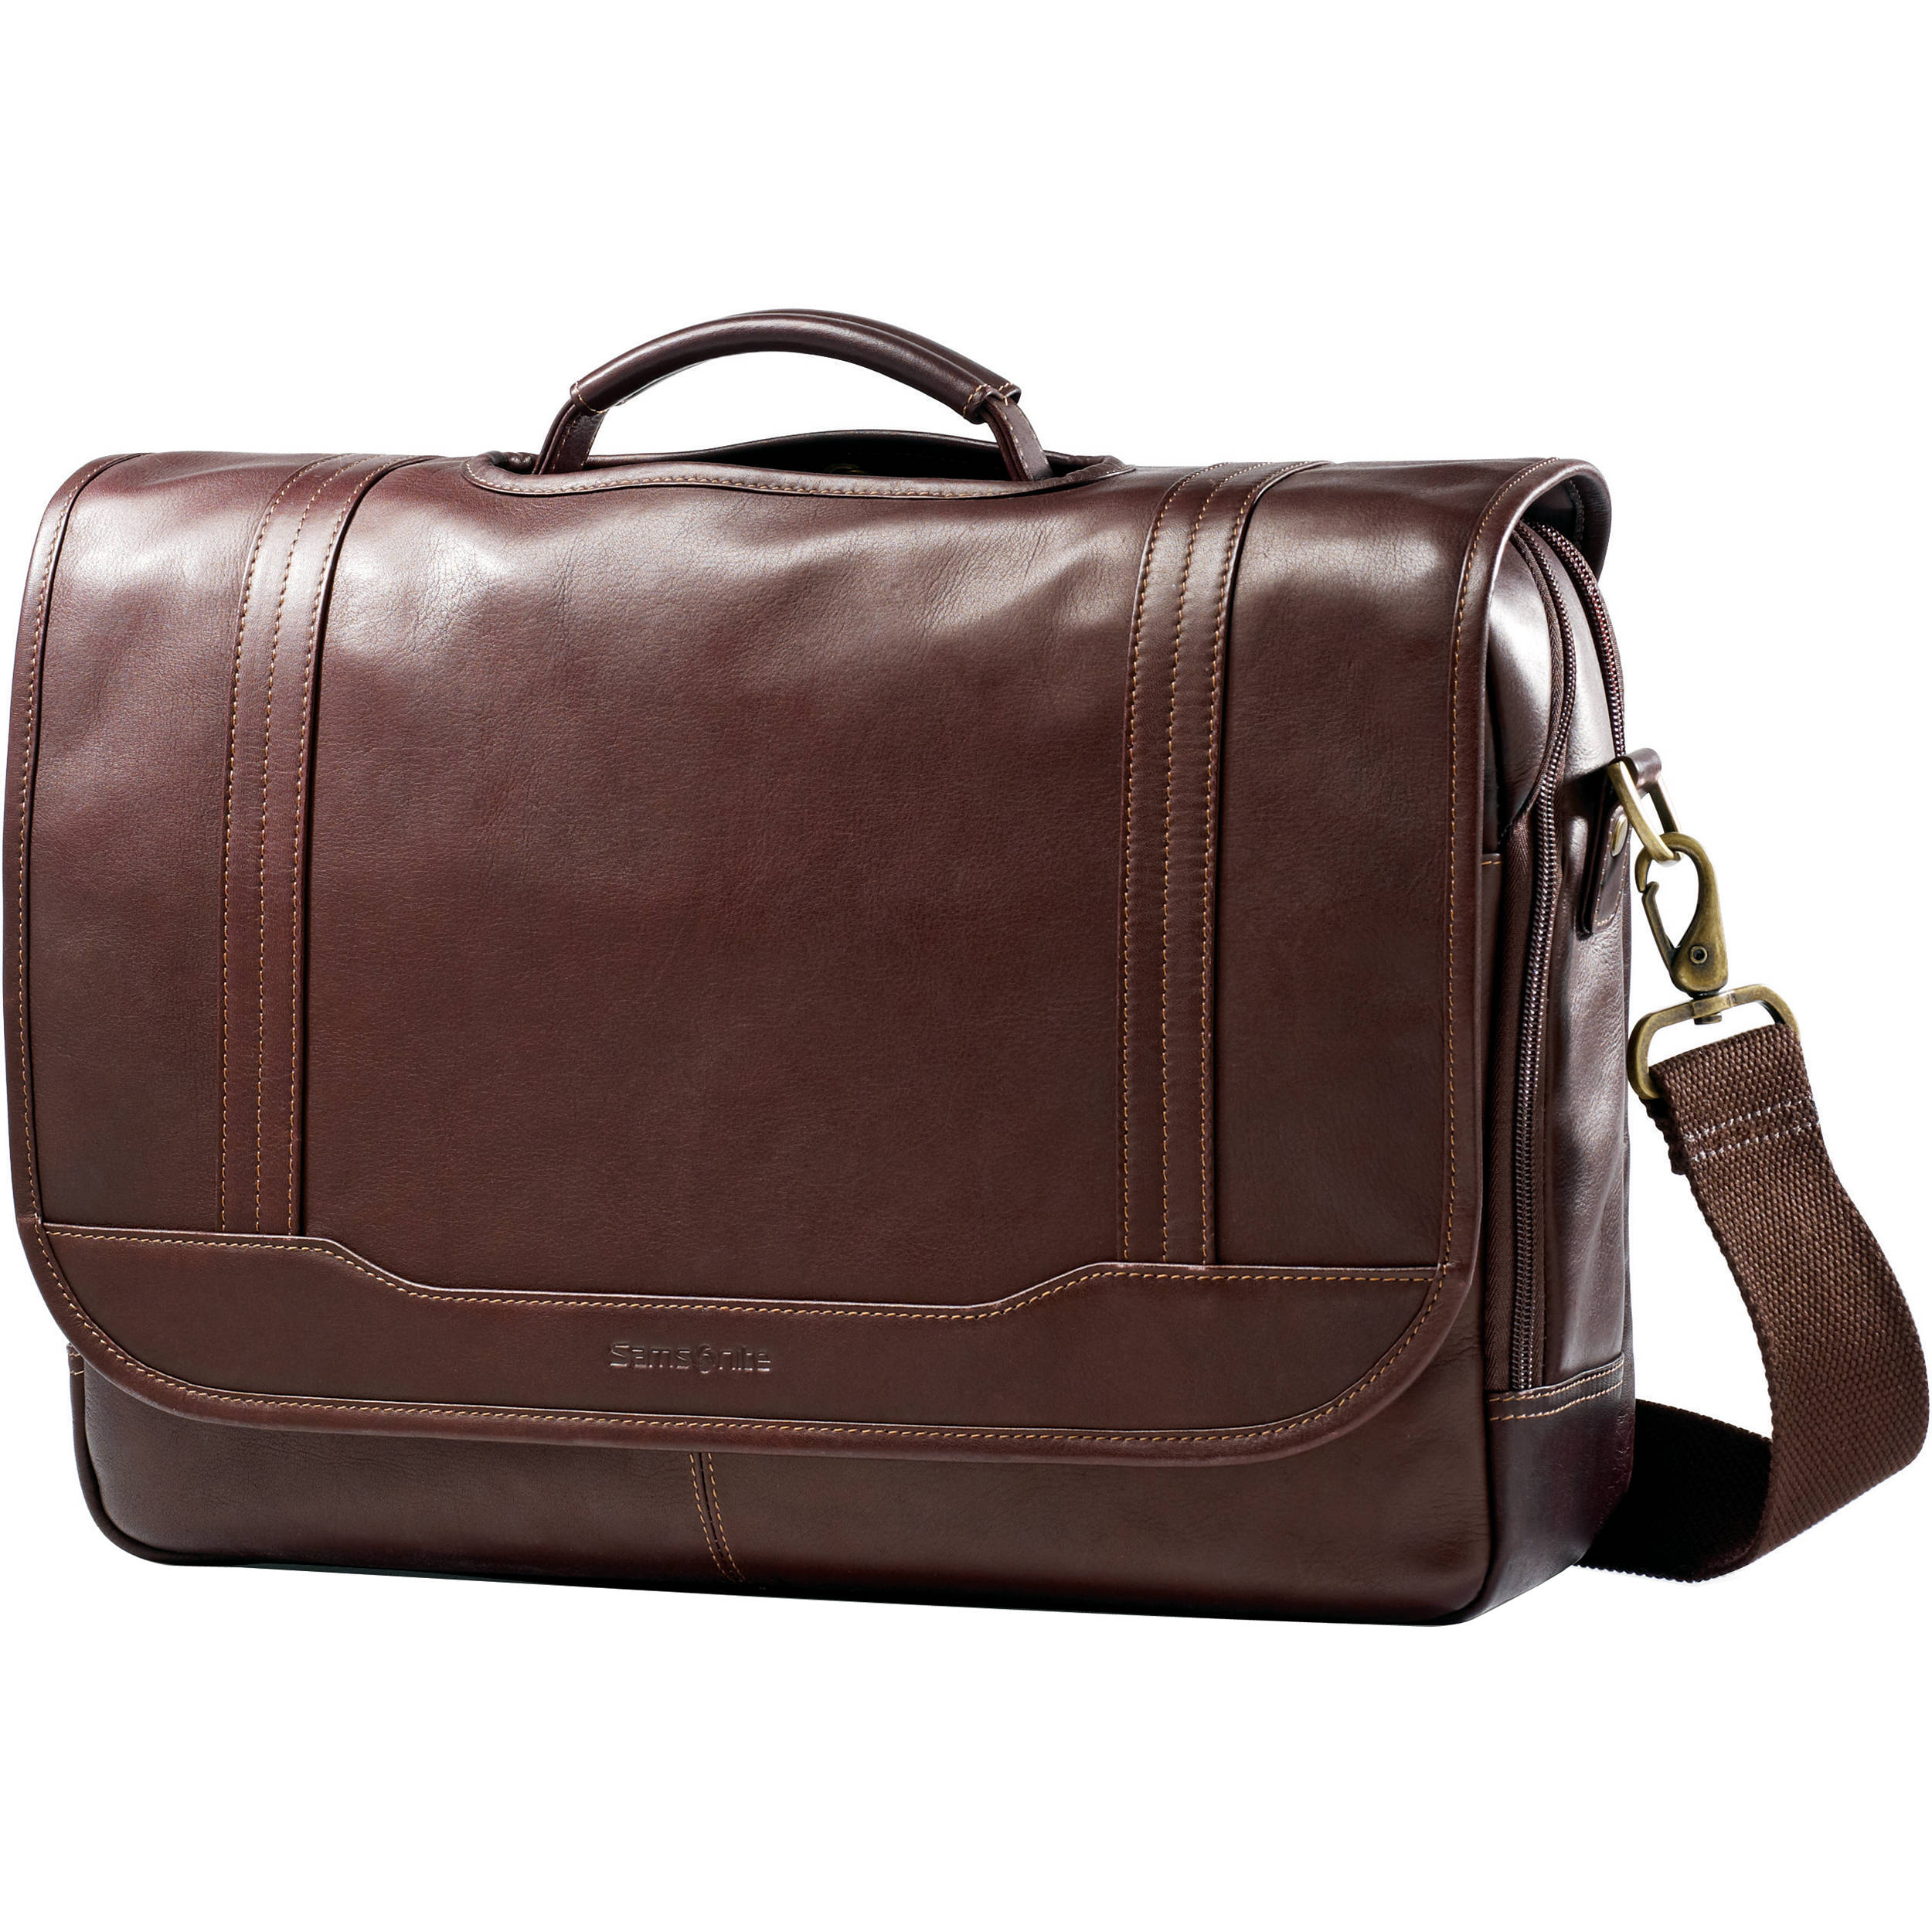 Samsonite Colombian Leather Flapover Briefcase 50789-1139 B&H